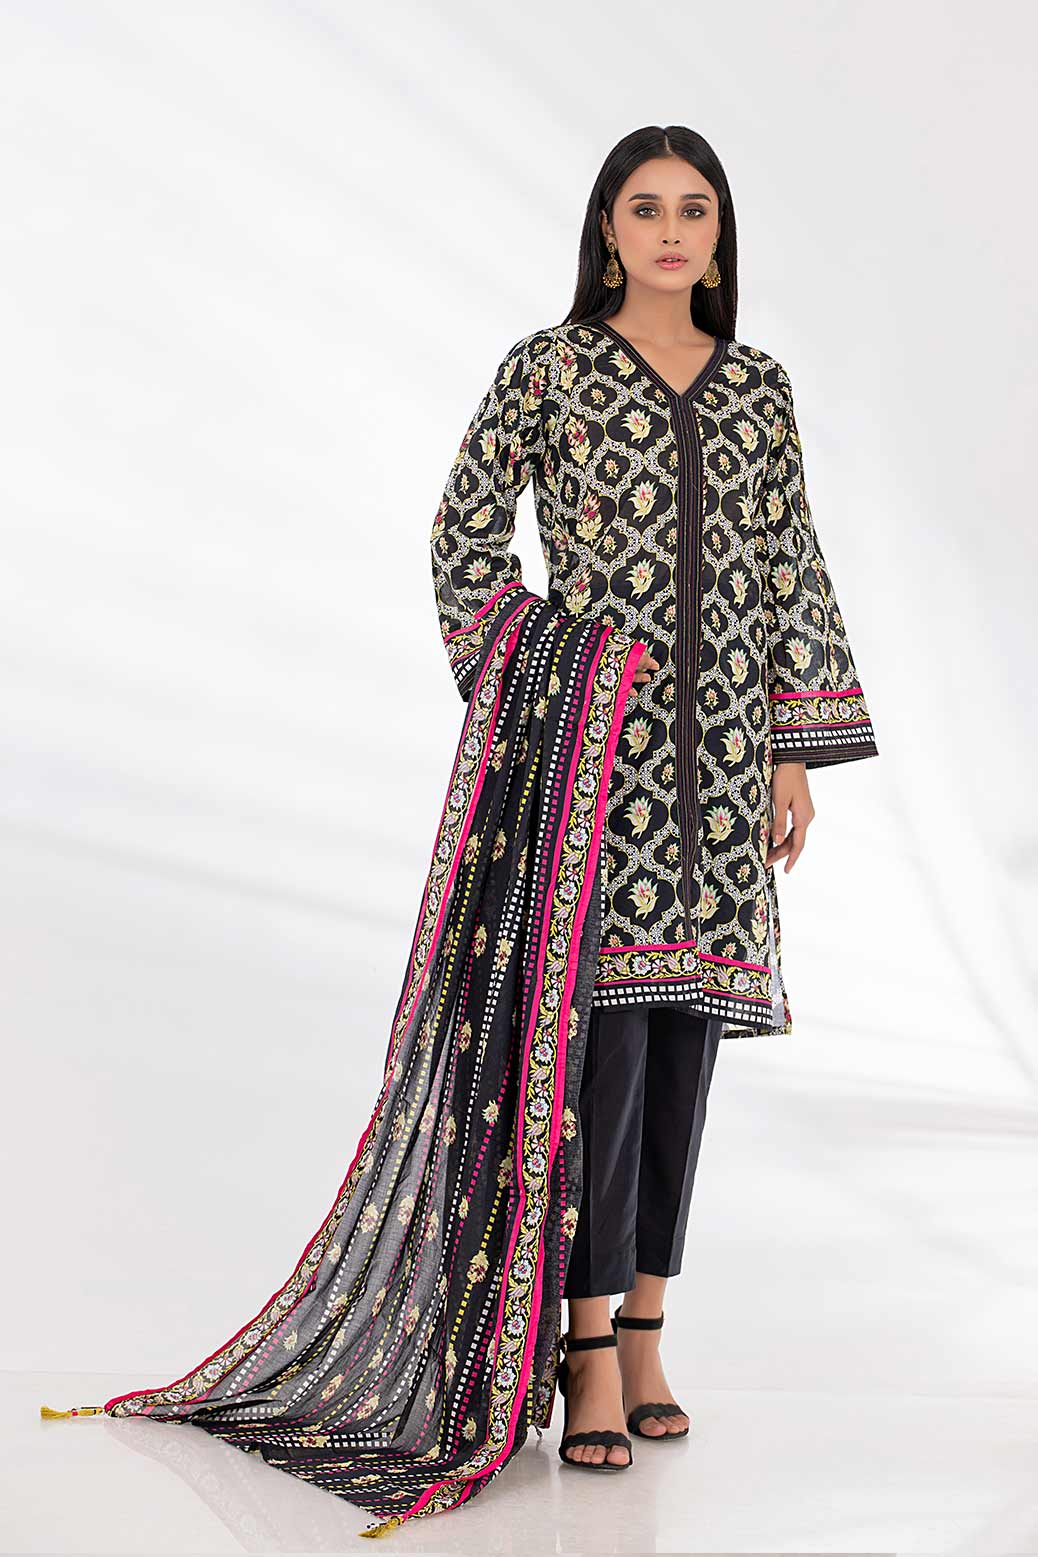 New Black Lawn Suit For Girls